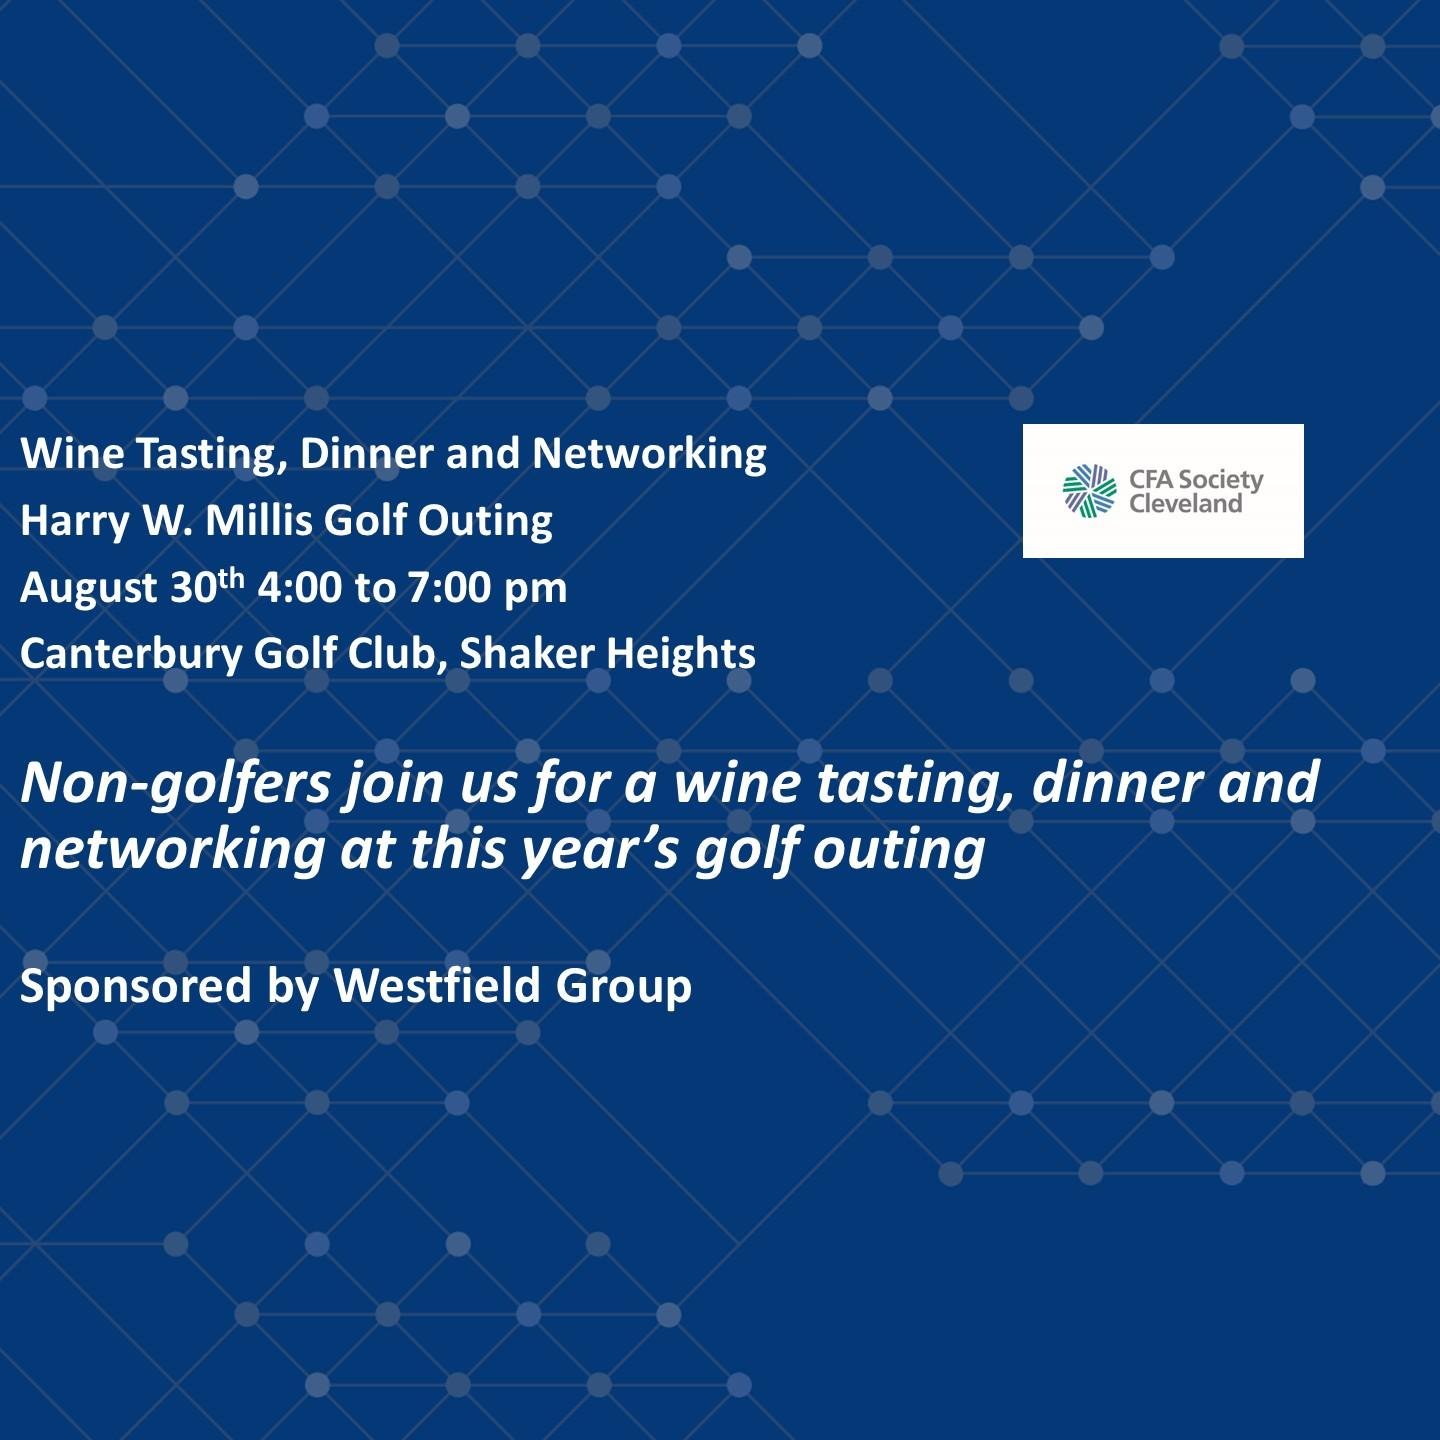 Wine Tasting and Dinner for Non-Golfers at CFA Cleveland Golf Outing